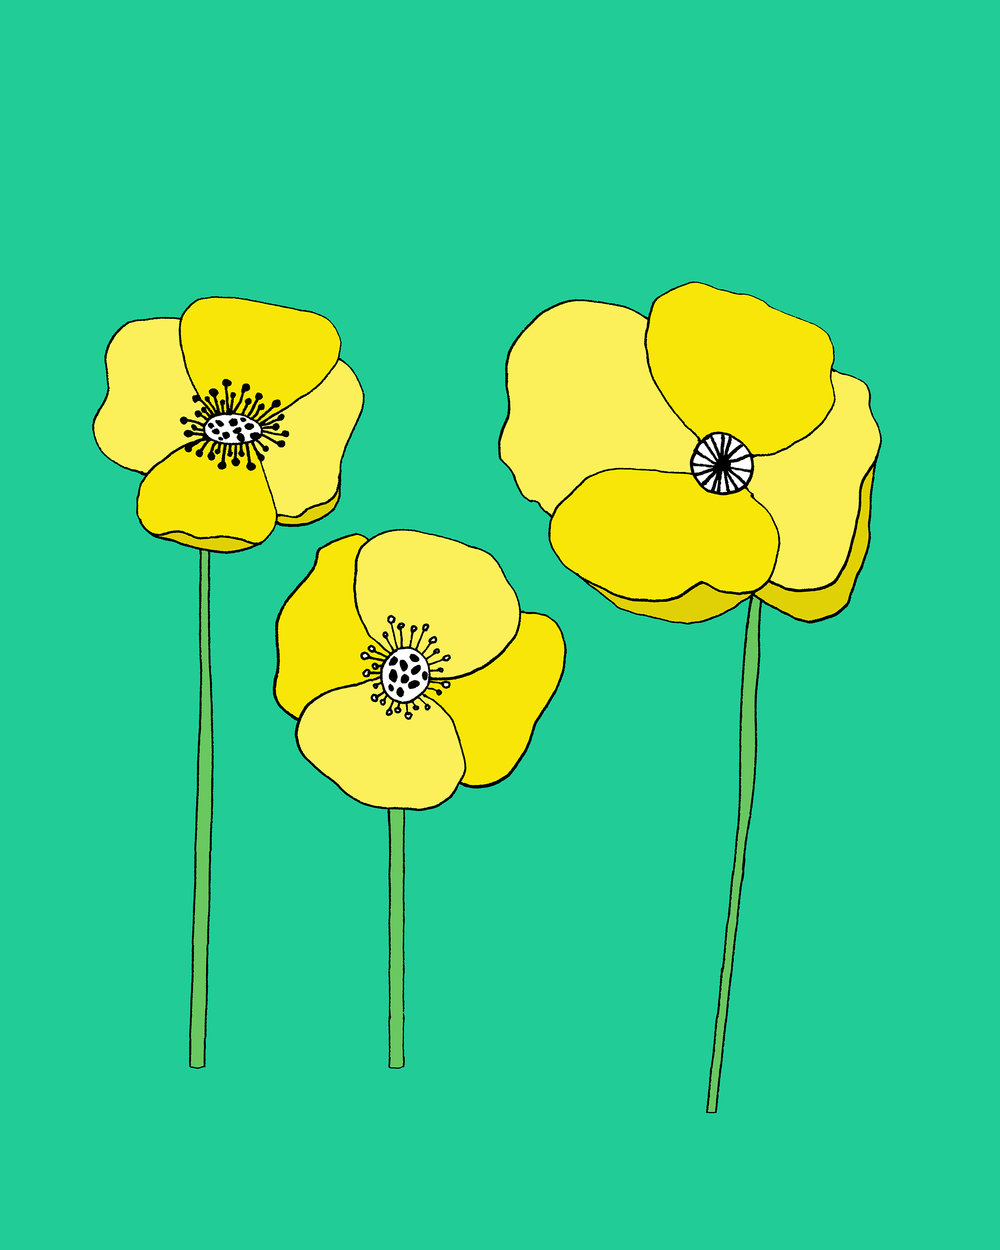 Teal and Yellow Poppies_low res.jpg